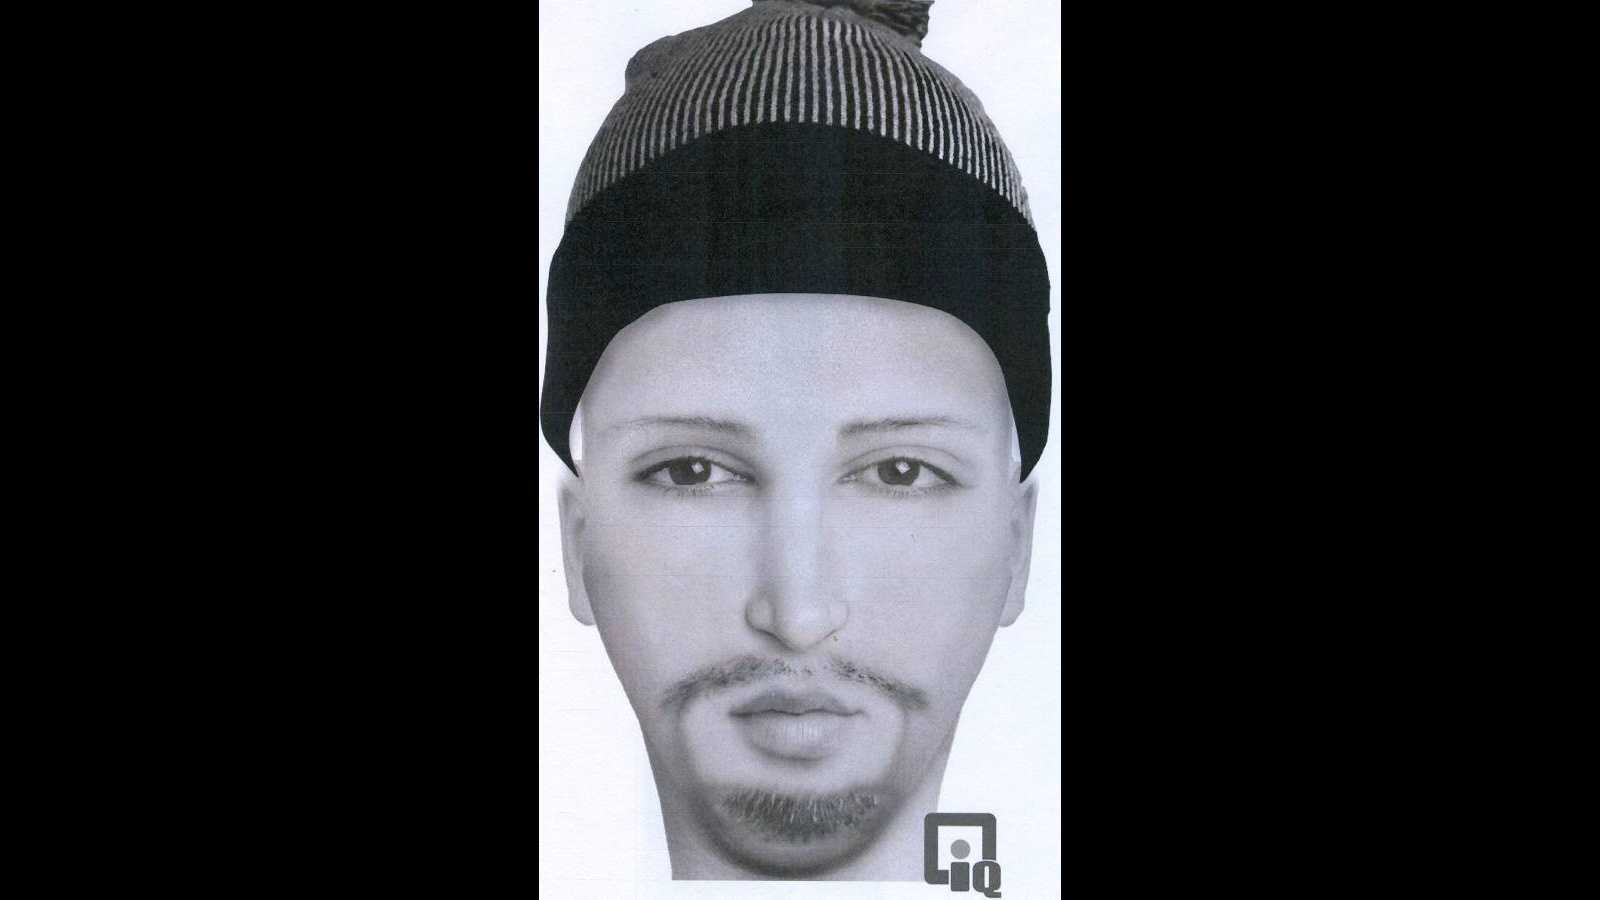 Stockton police are looking for a man who sexually assaulted a woman in her home Wednesday, Feb. 3, 2016. Investigators released this suspect sketch on Friday.